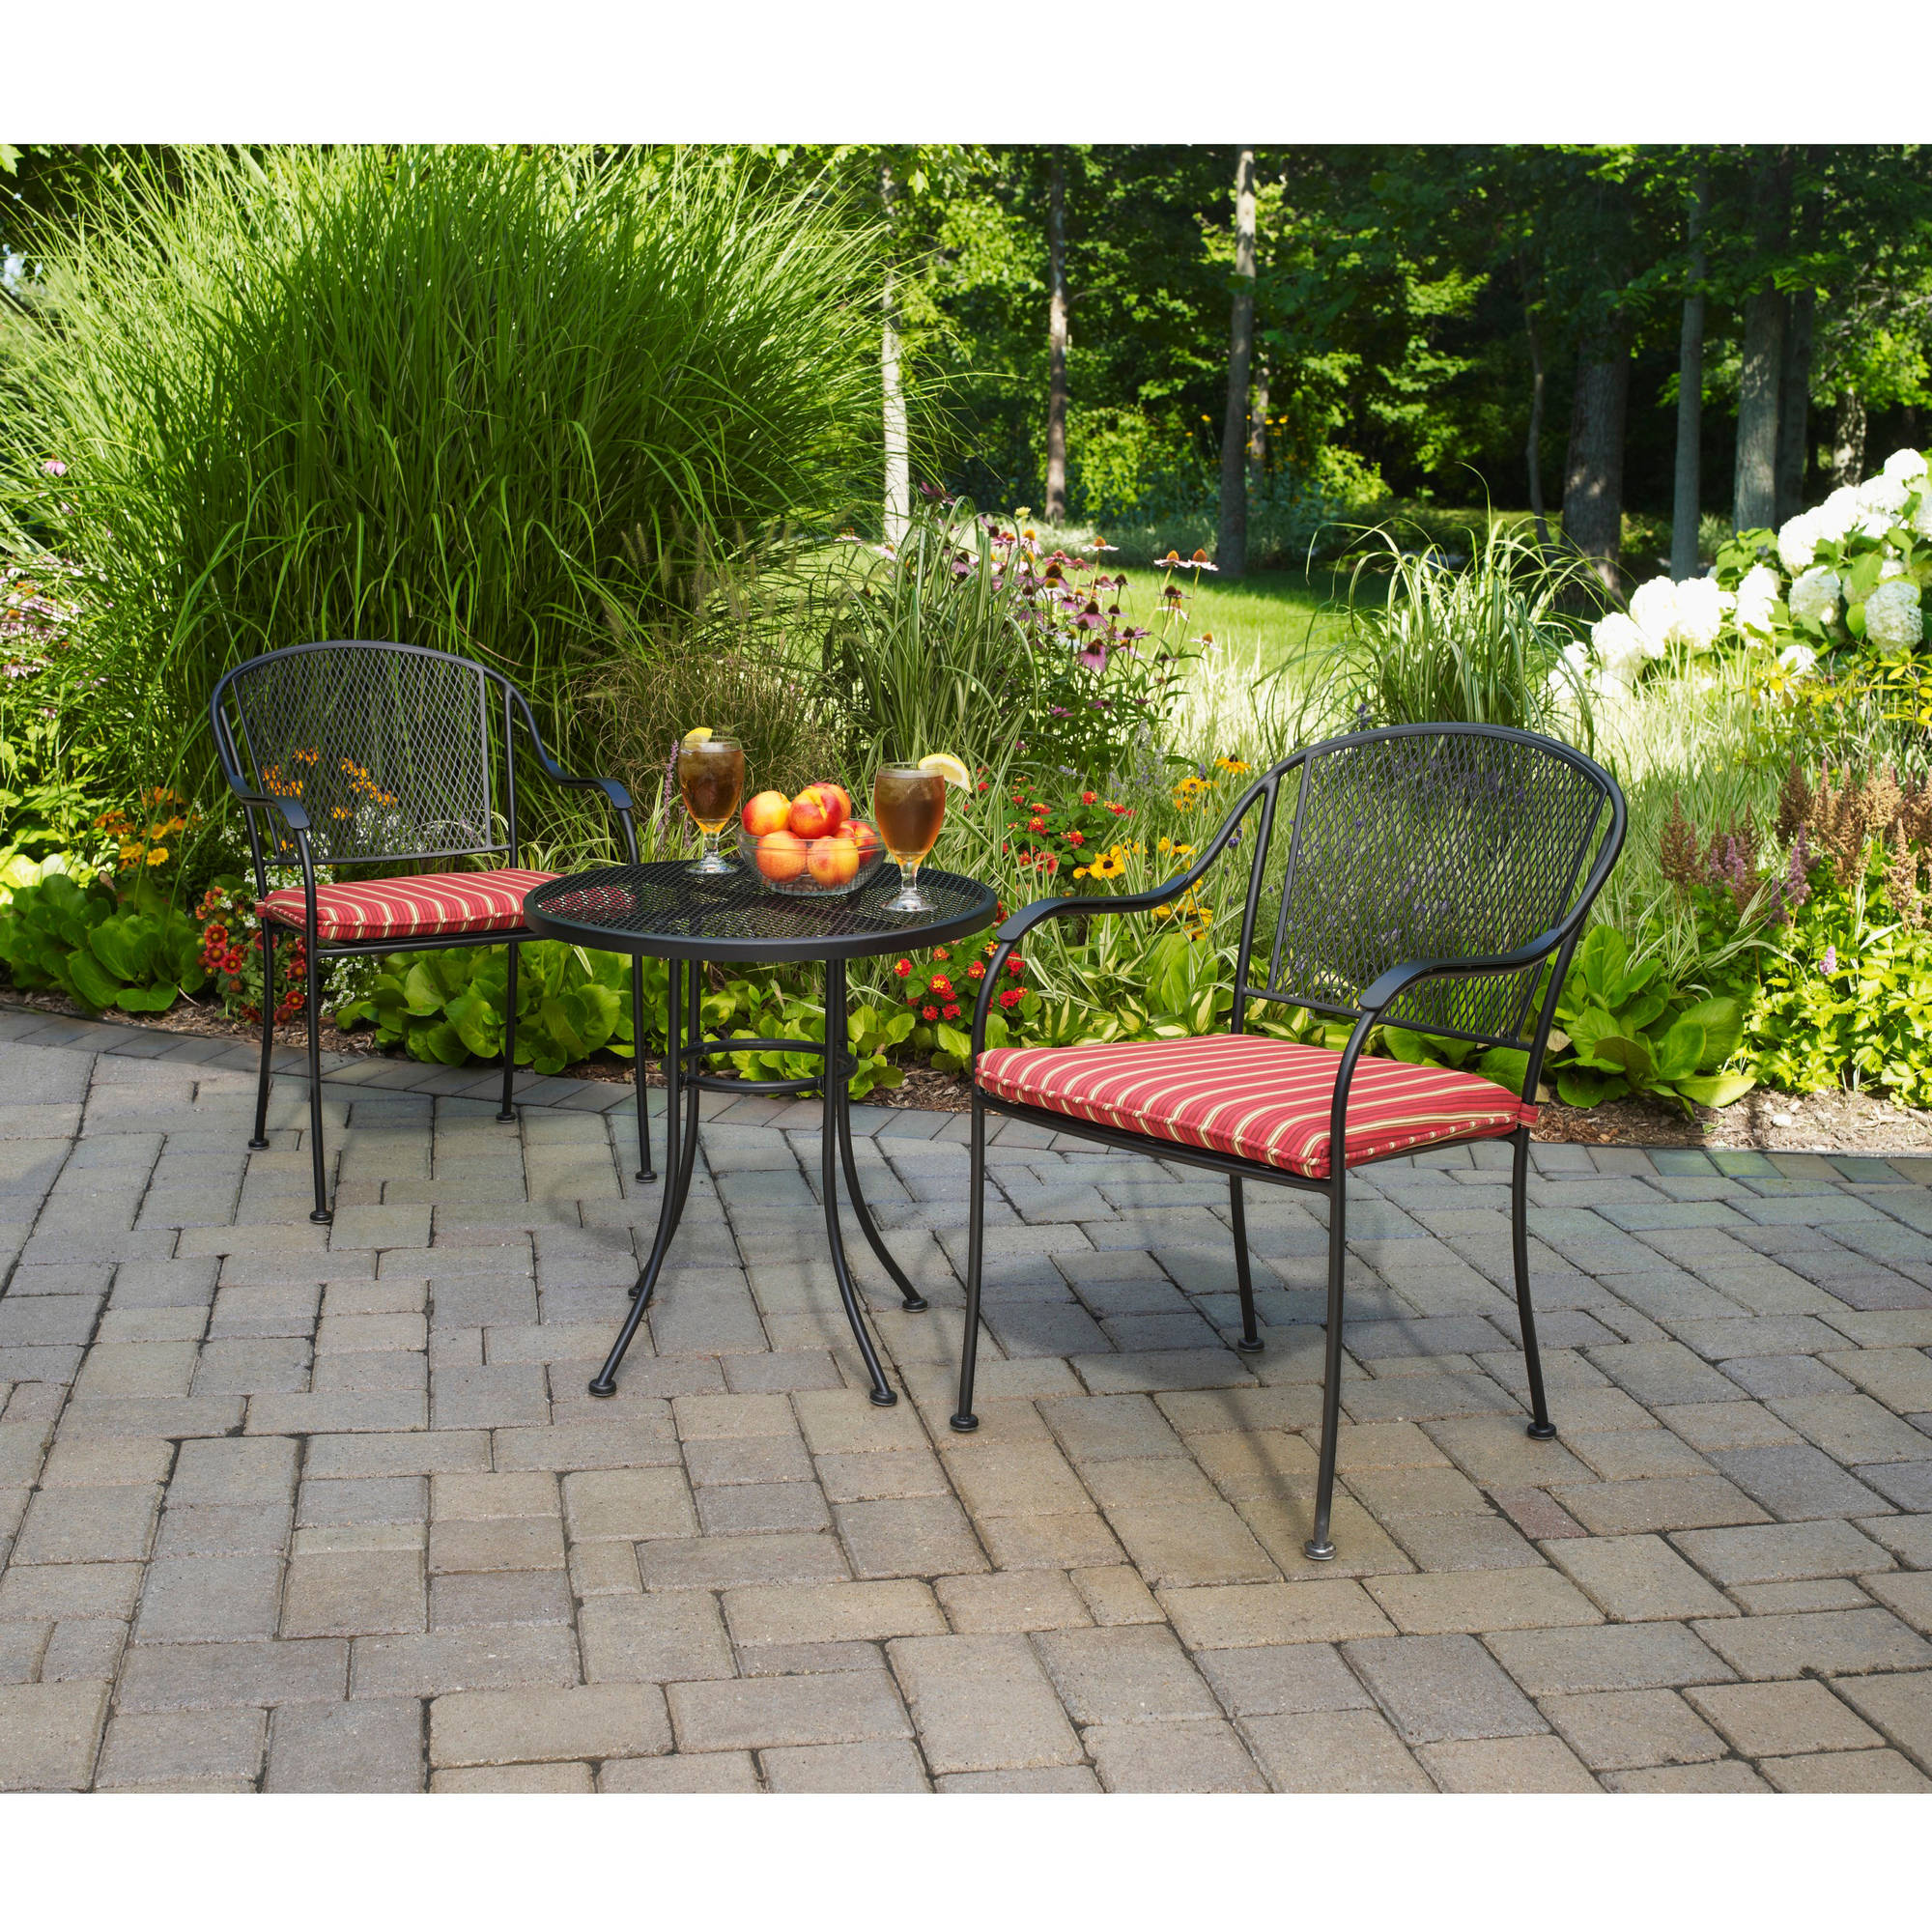 Bistro Sets mainstays forest hills 3-piece outdoor bistro set, multiple colors -  walmart.com DJZKLYD